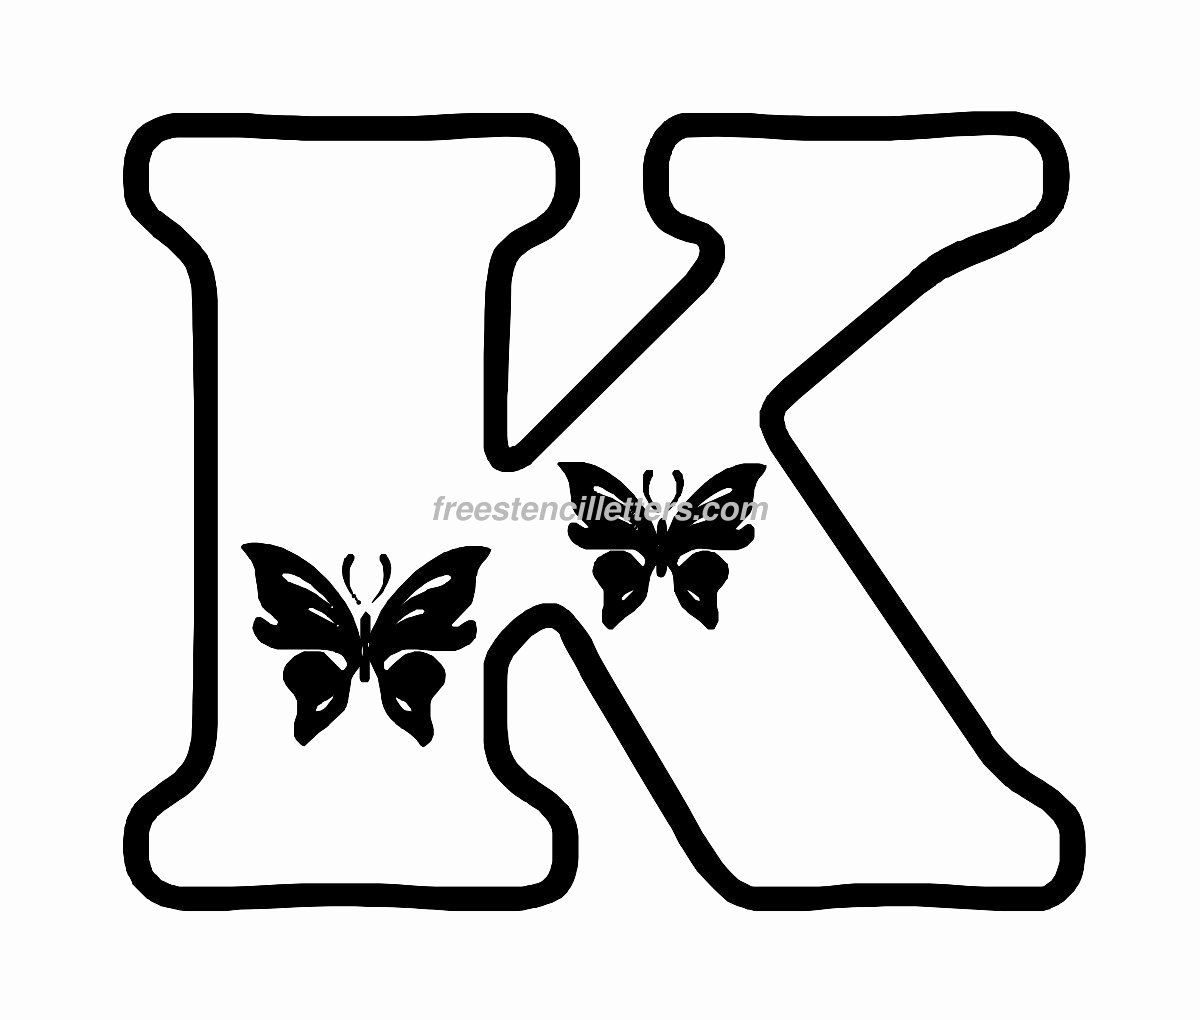 Letter Stencils to Print Free Elegant butterfly Stencil Letters Archives Free Stencil Letters